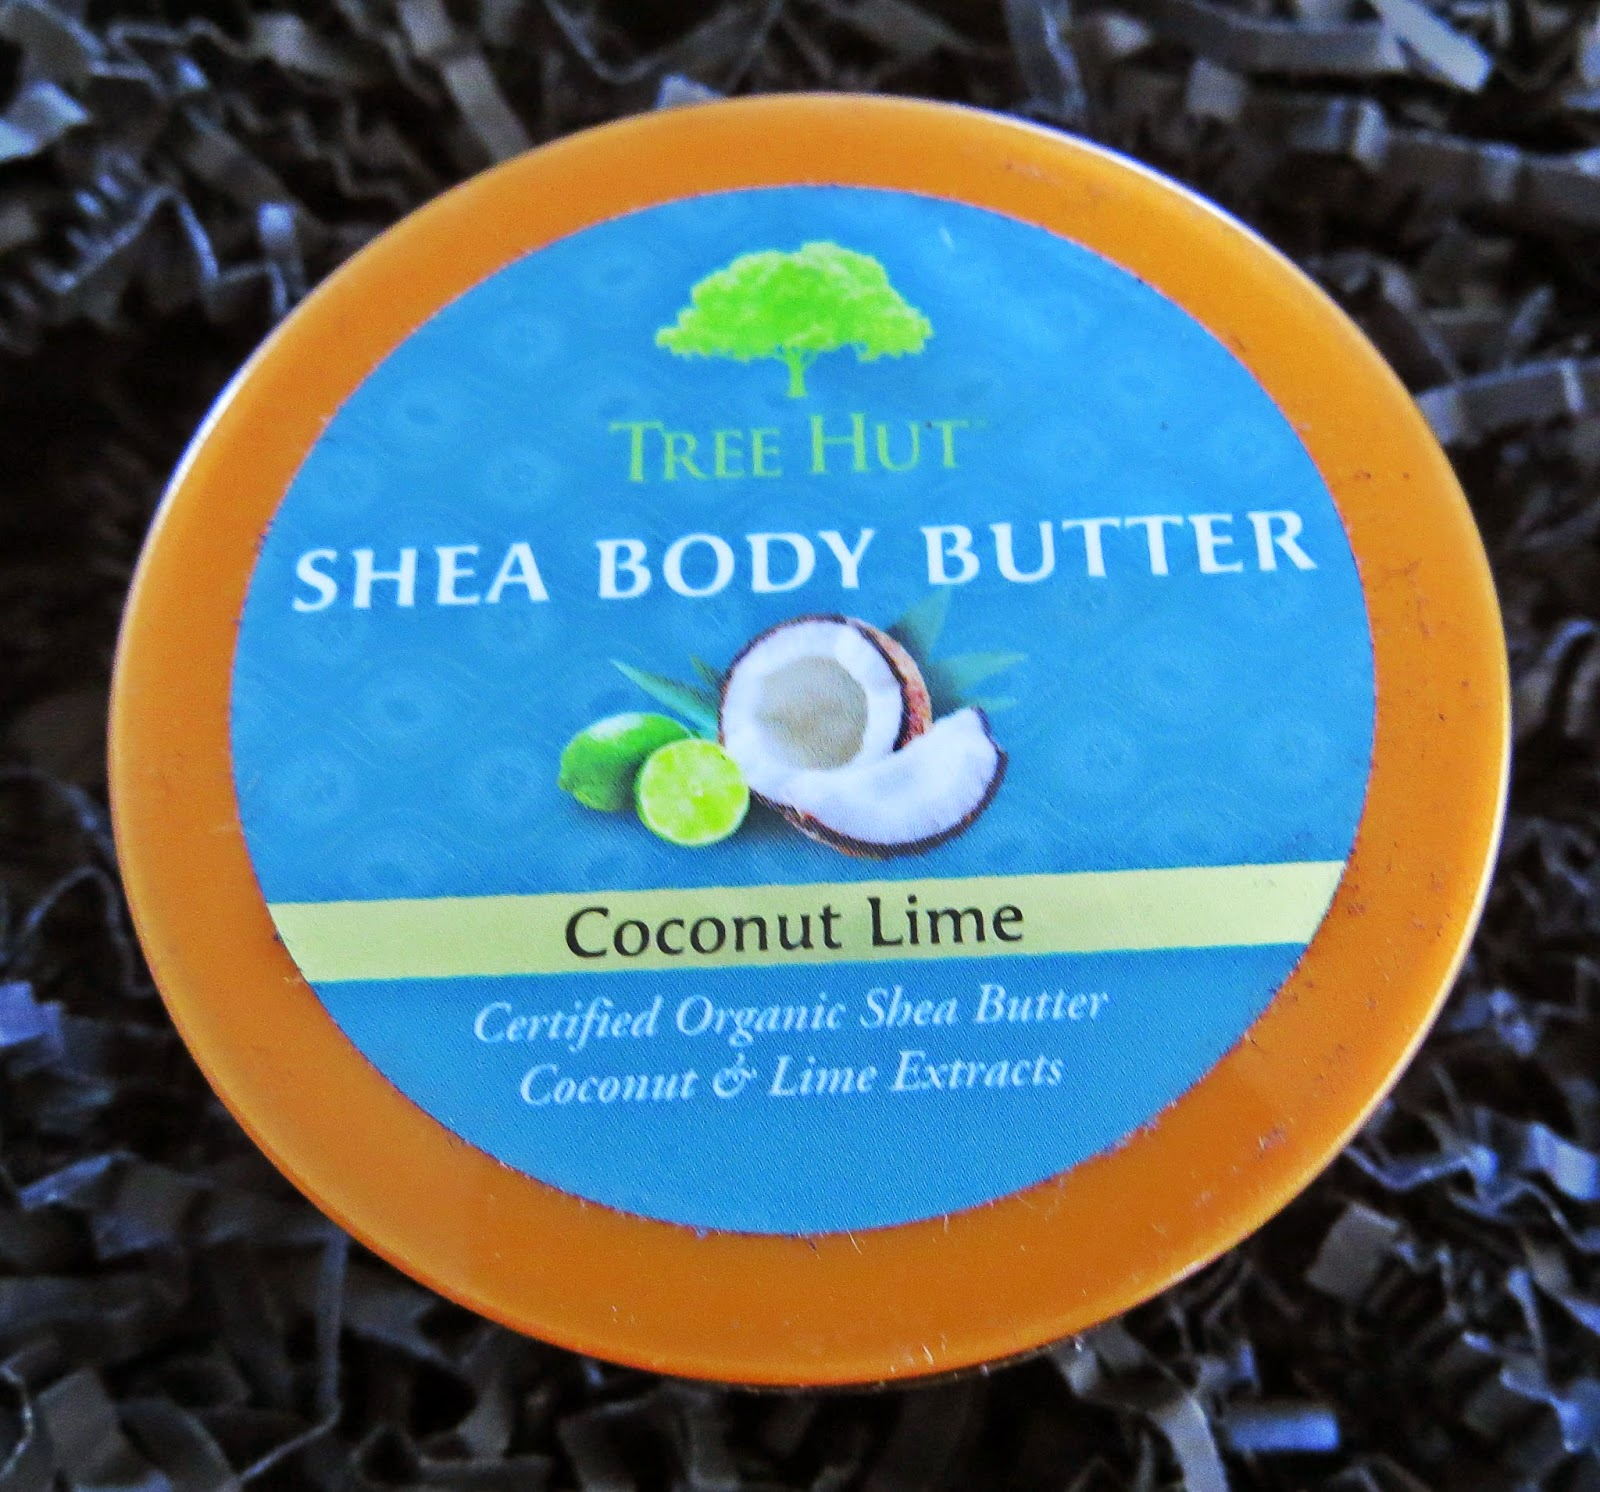 Tree Hut Shea Body Butter in Coconut Lime